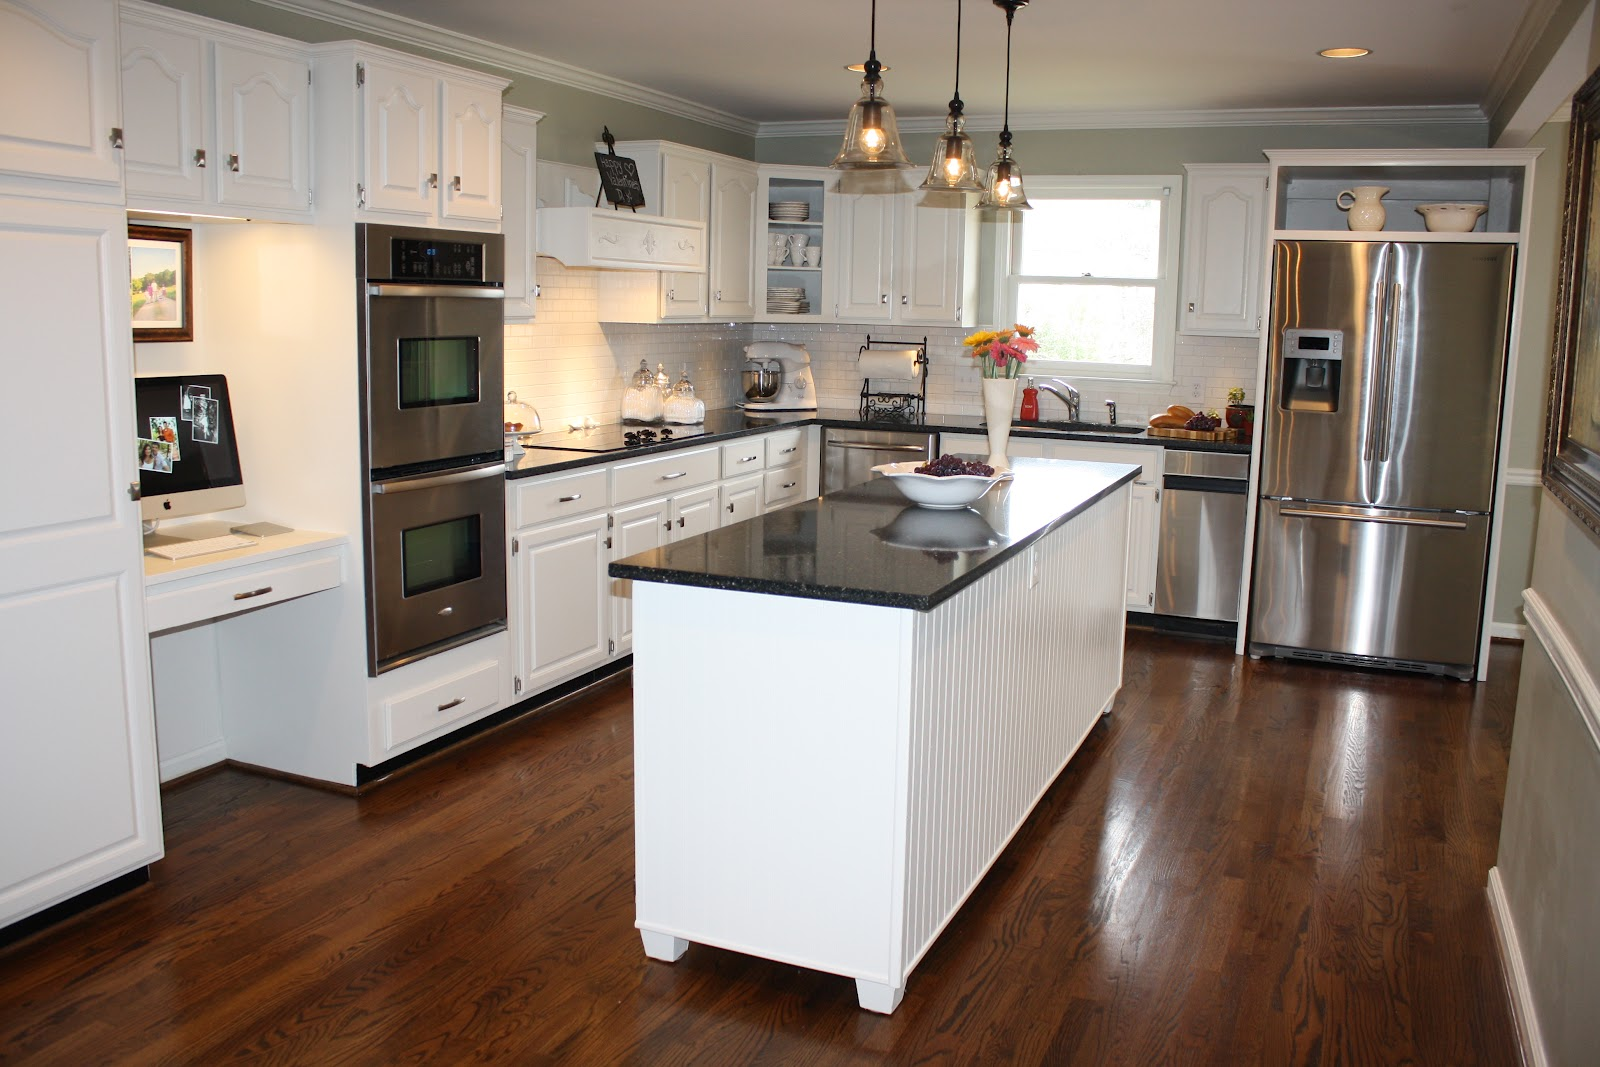 Ikea Kitchen Remodel Before And After Simply Sweet Kitchen Renovation